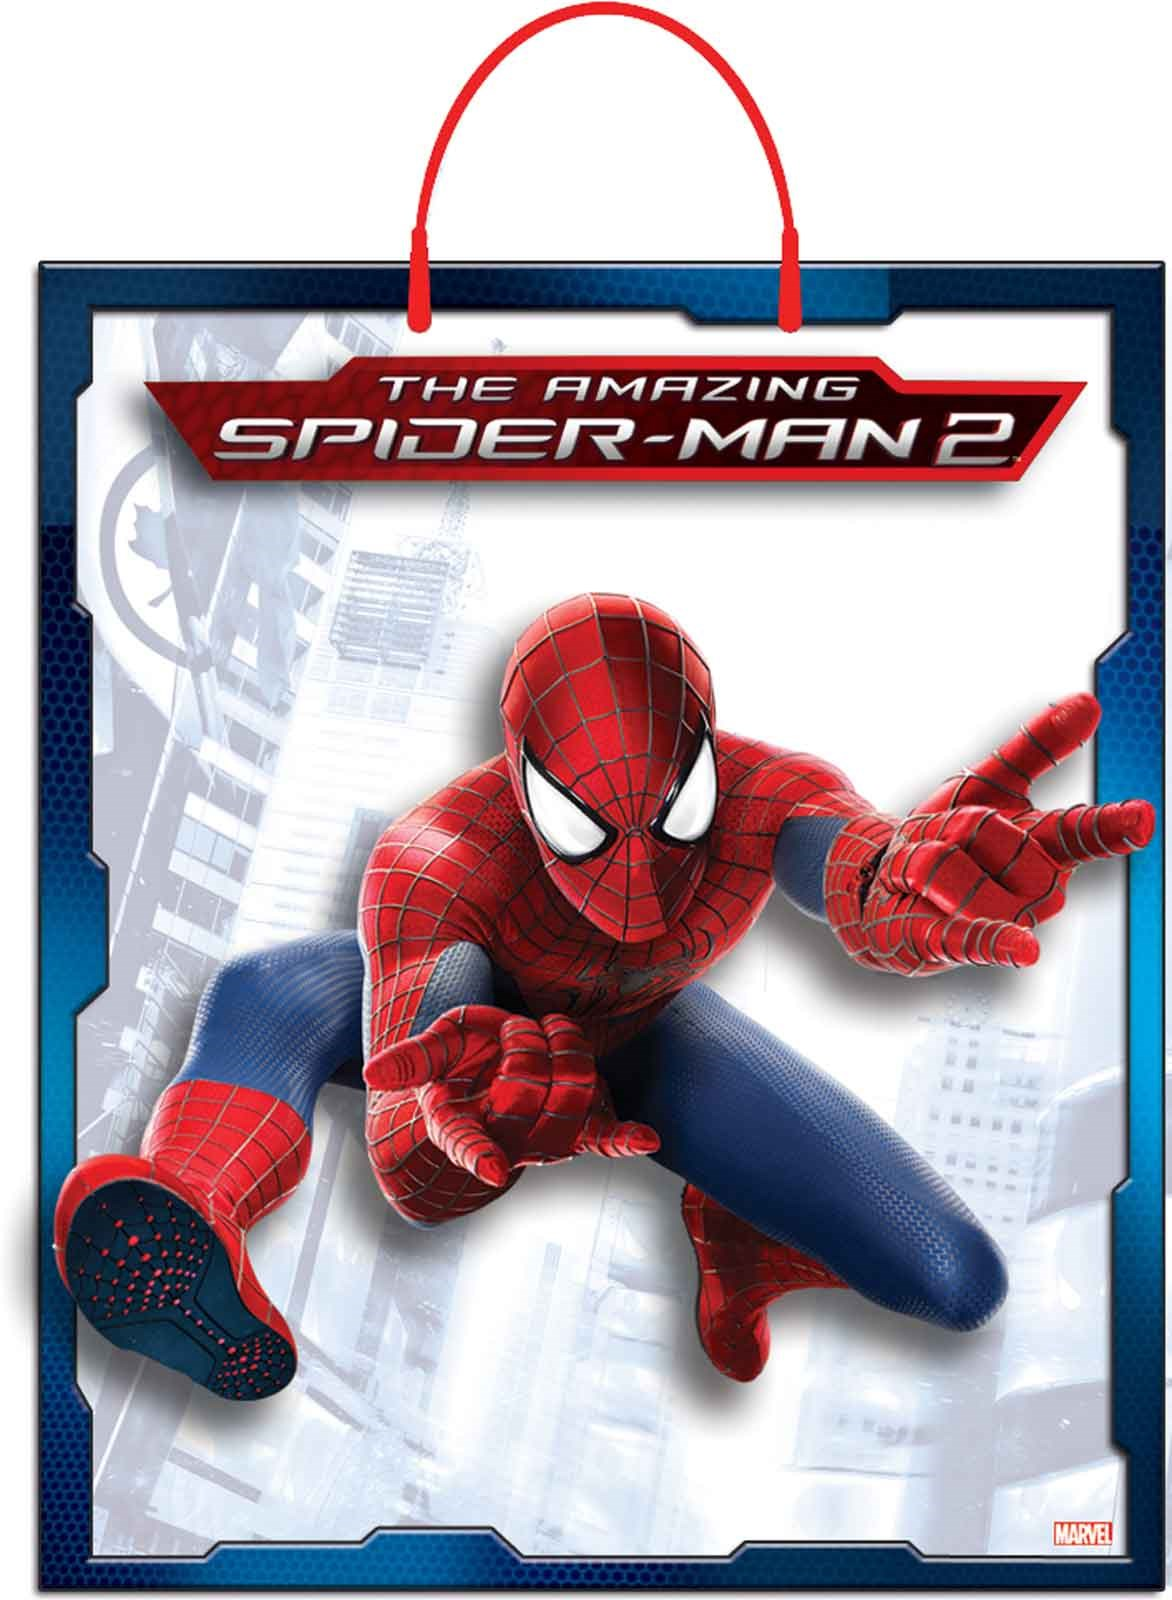 New Official The Amazing Spider-Man 2 Movie Trick or Treat Bag